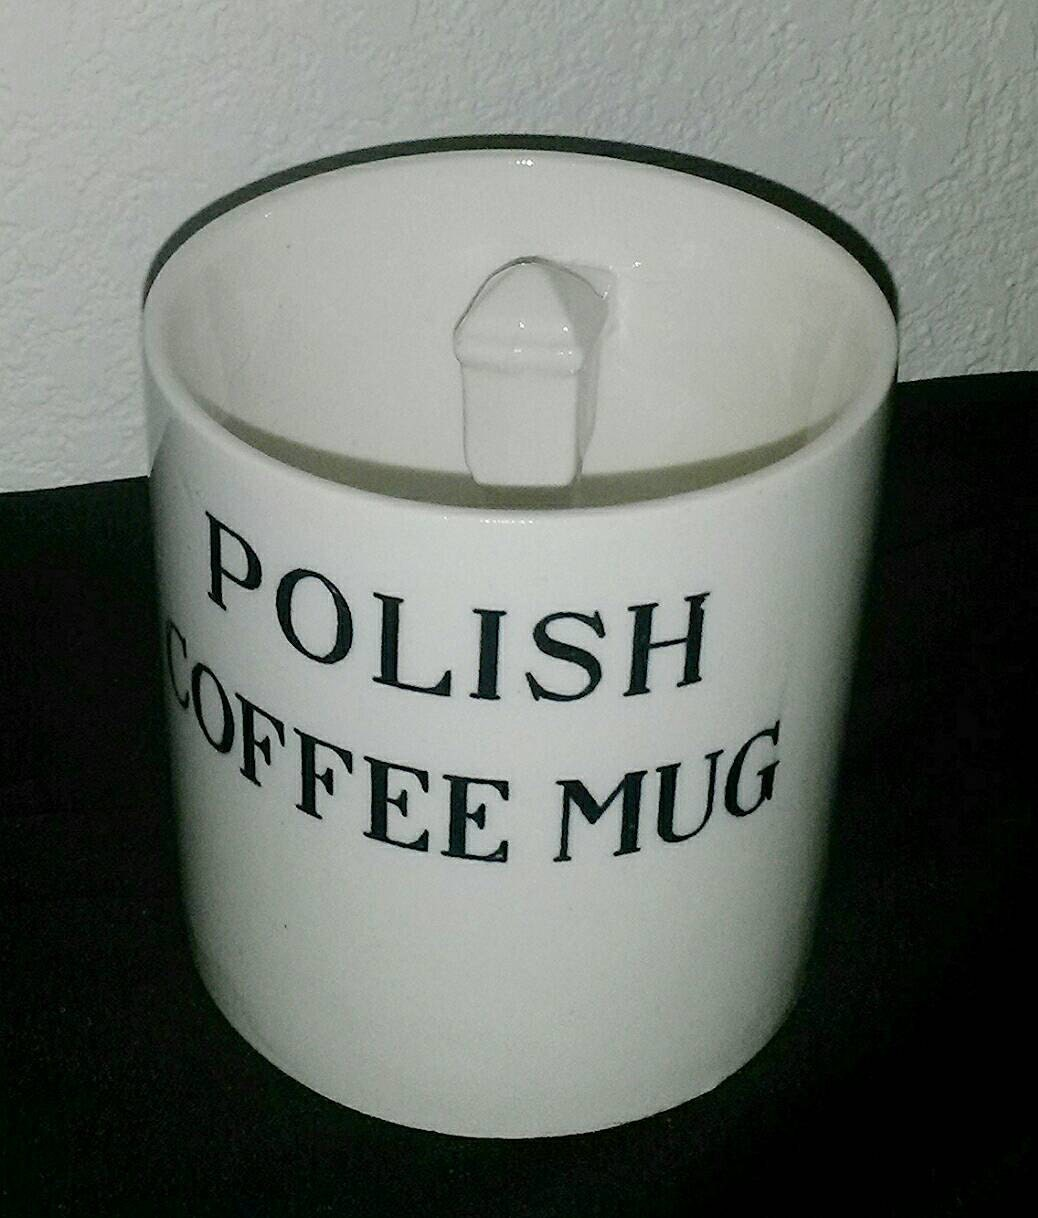 Vintage Polish Coffee Mug Novelty Gag Gift Polack Joke Cup